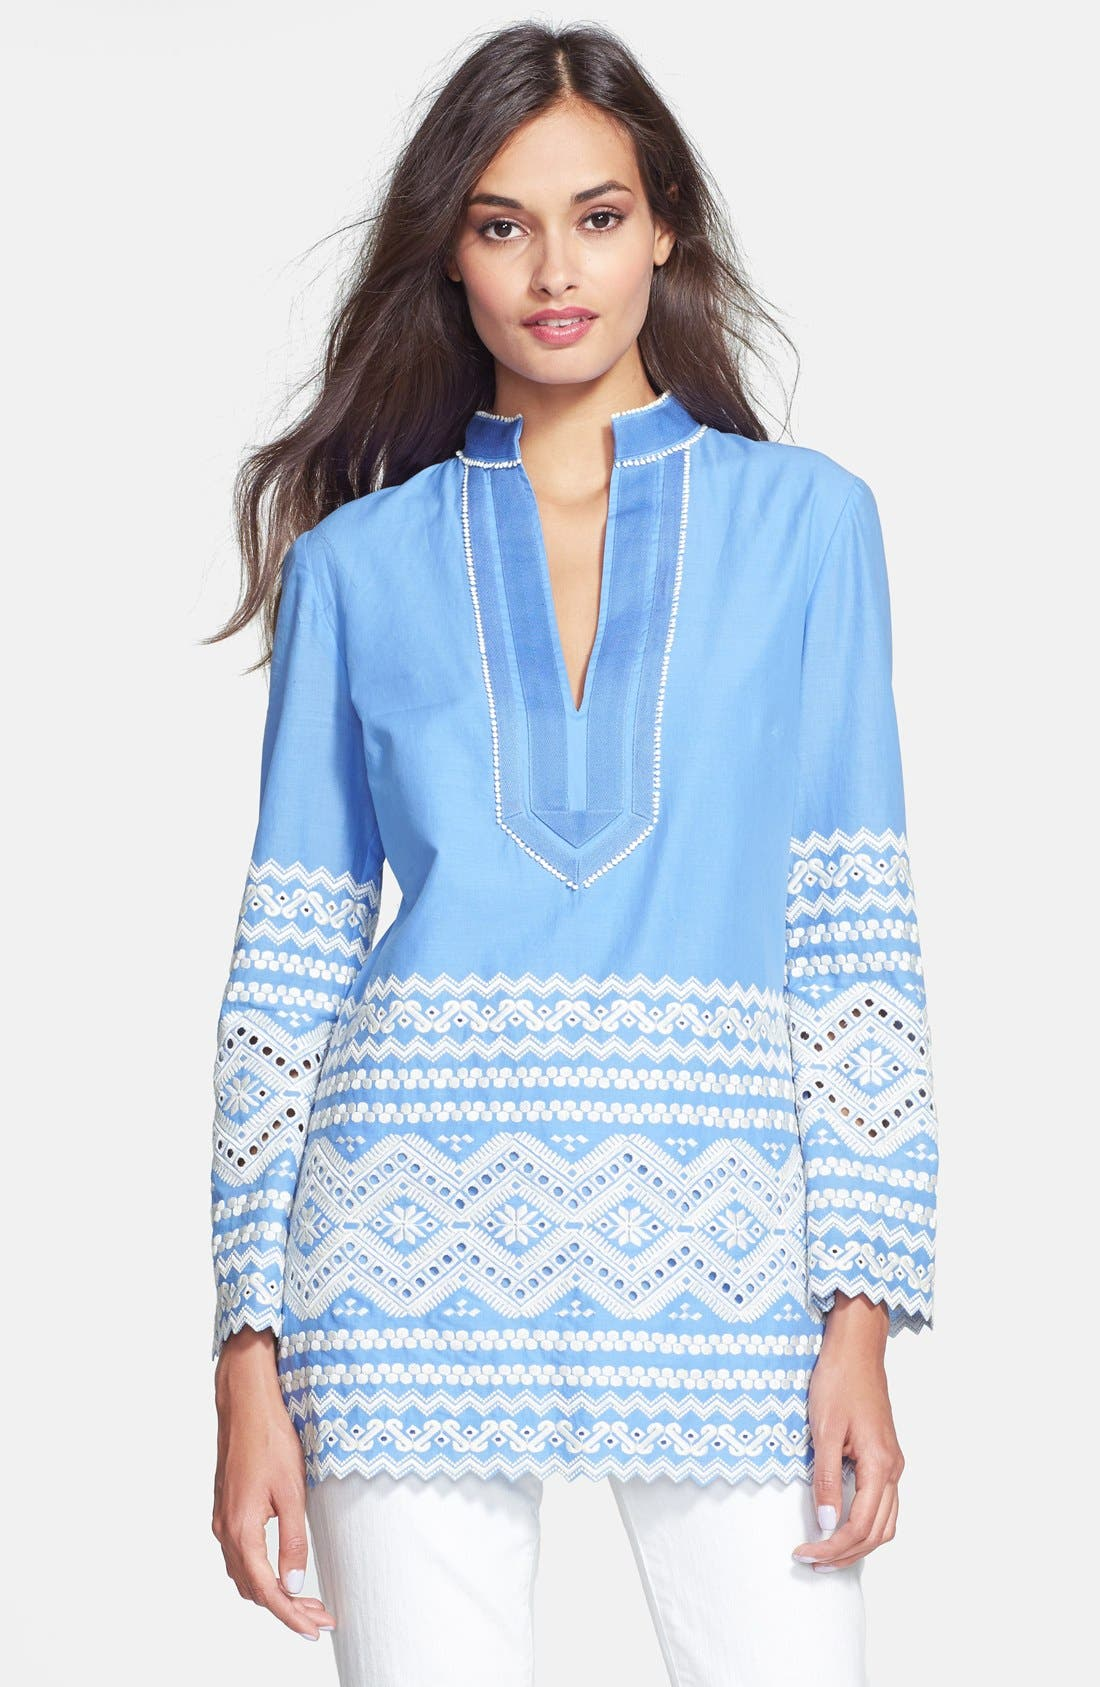 Alternate Image 1 Selected - Tory Burch 'Zita' Embroidered Tunic Top